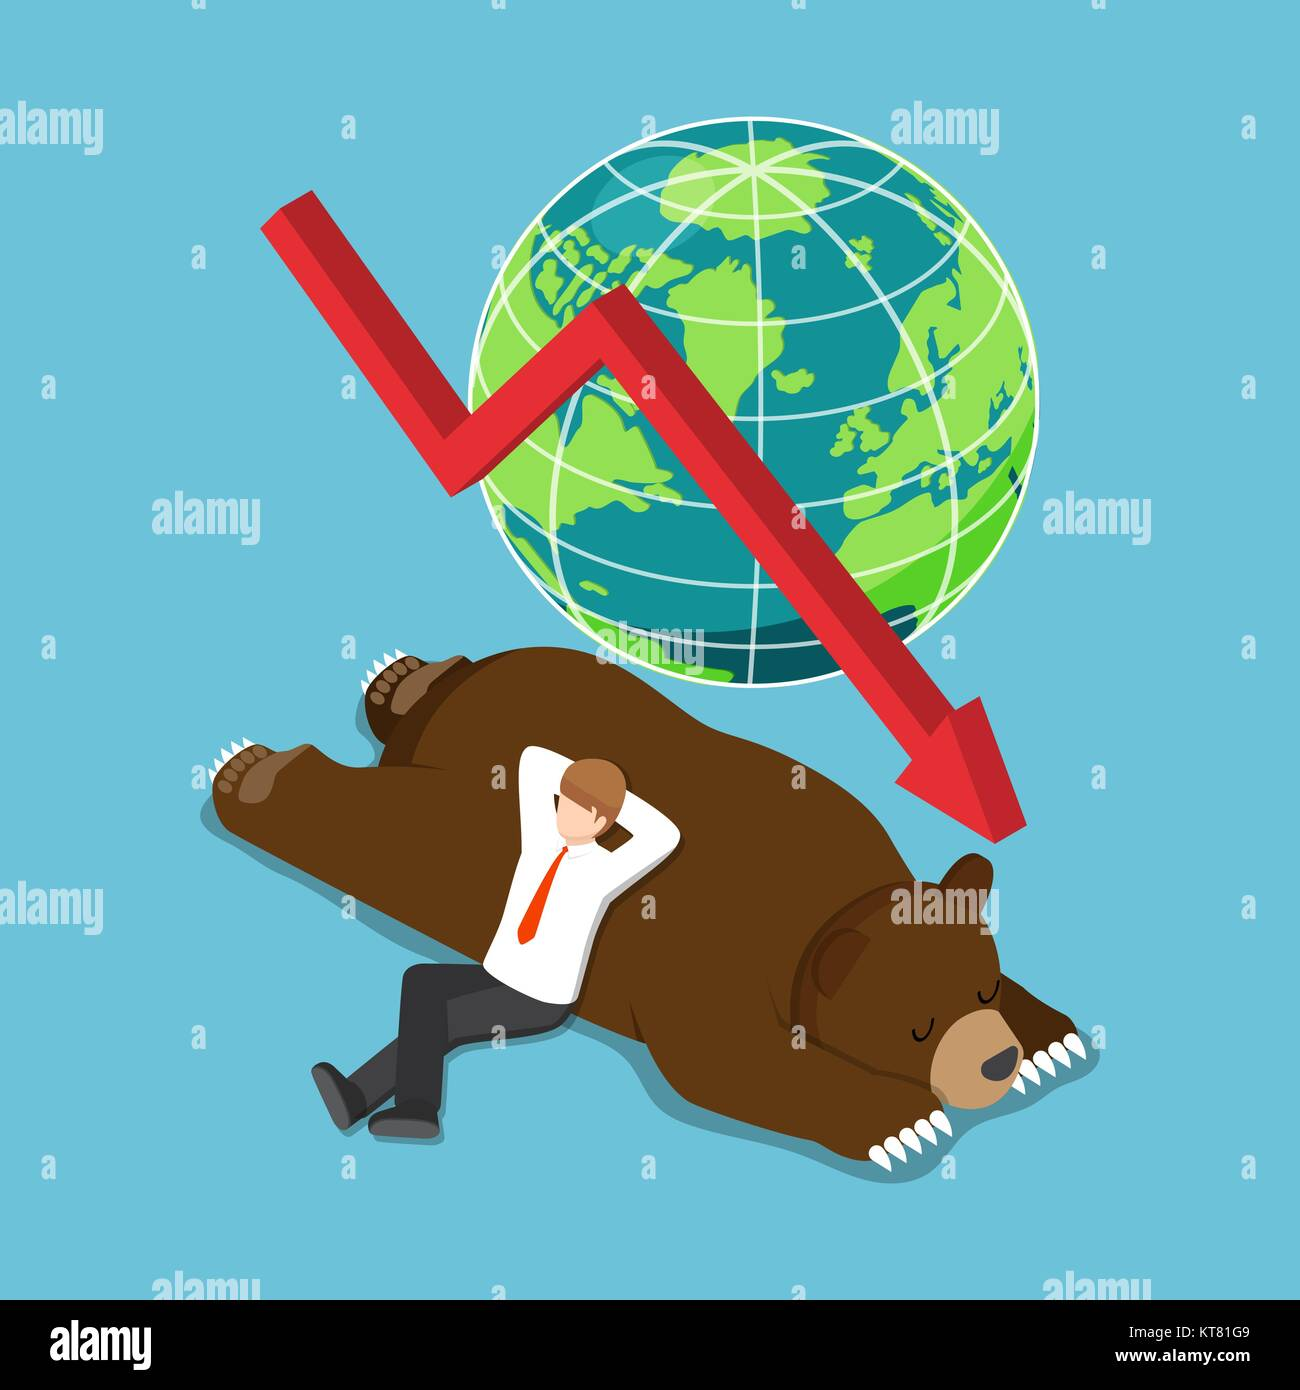 Flat 3d isometric businessman lay down on sleeping bear. bearish stock market and financial concept. - Stock Vector